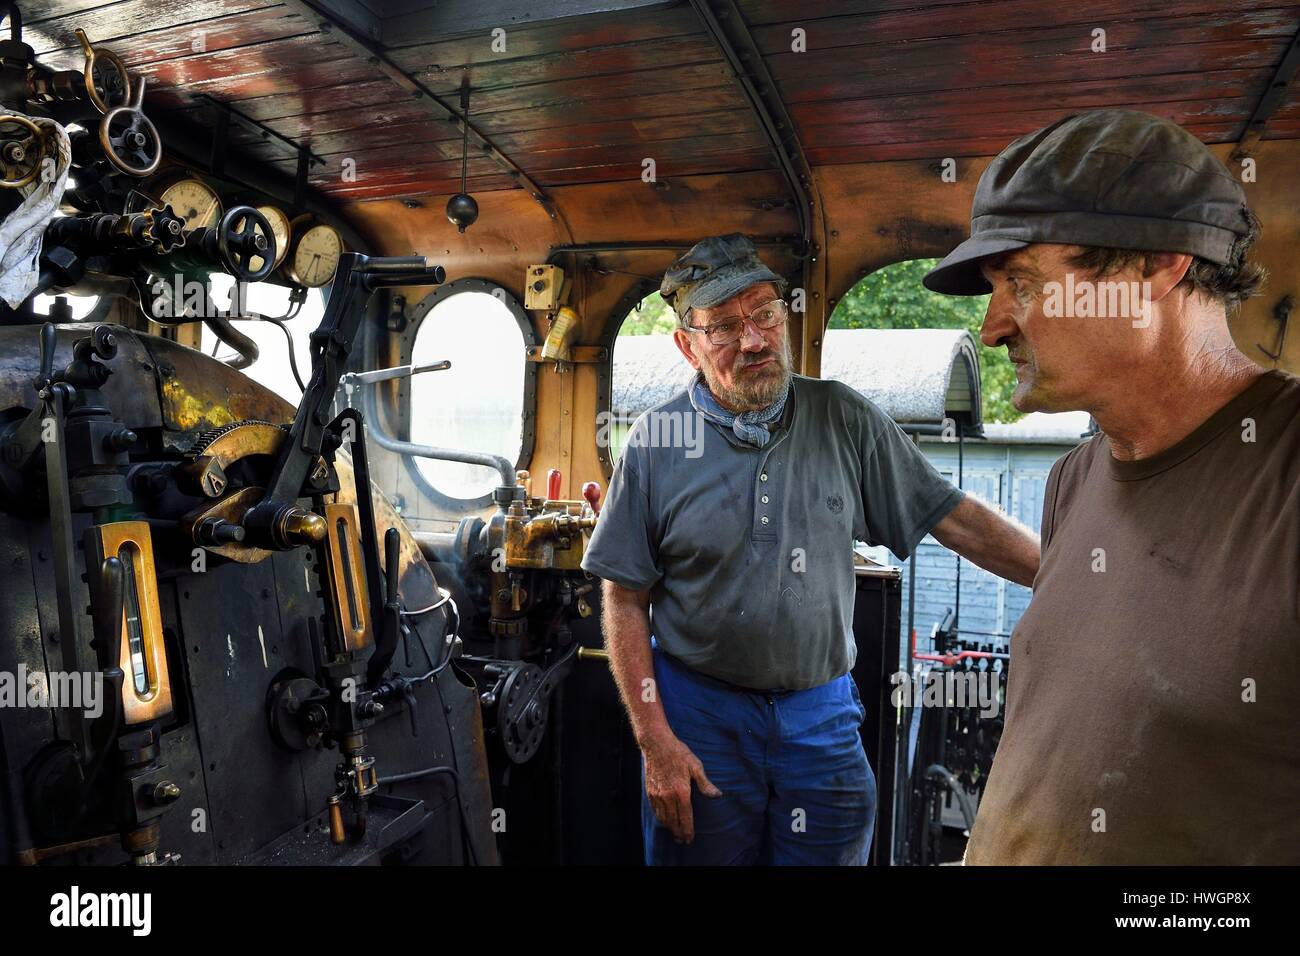 France, Alpes Maritimes, Puget Theniers, steam engine warming up, Daniel Bonneau (engineer and therefore train driver) Stock Photo